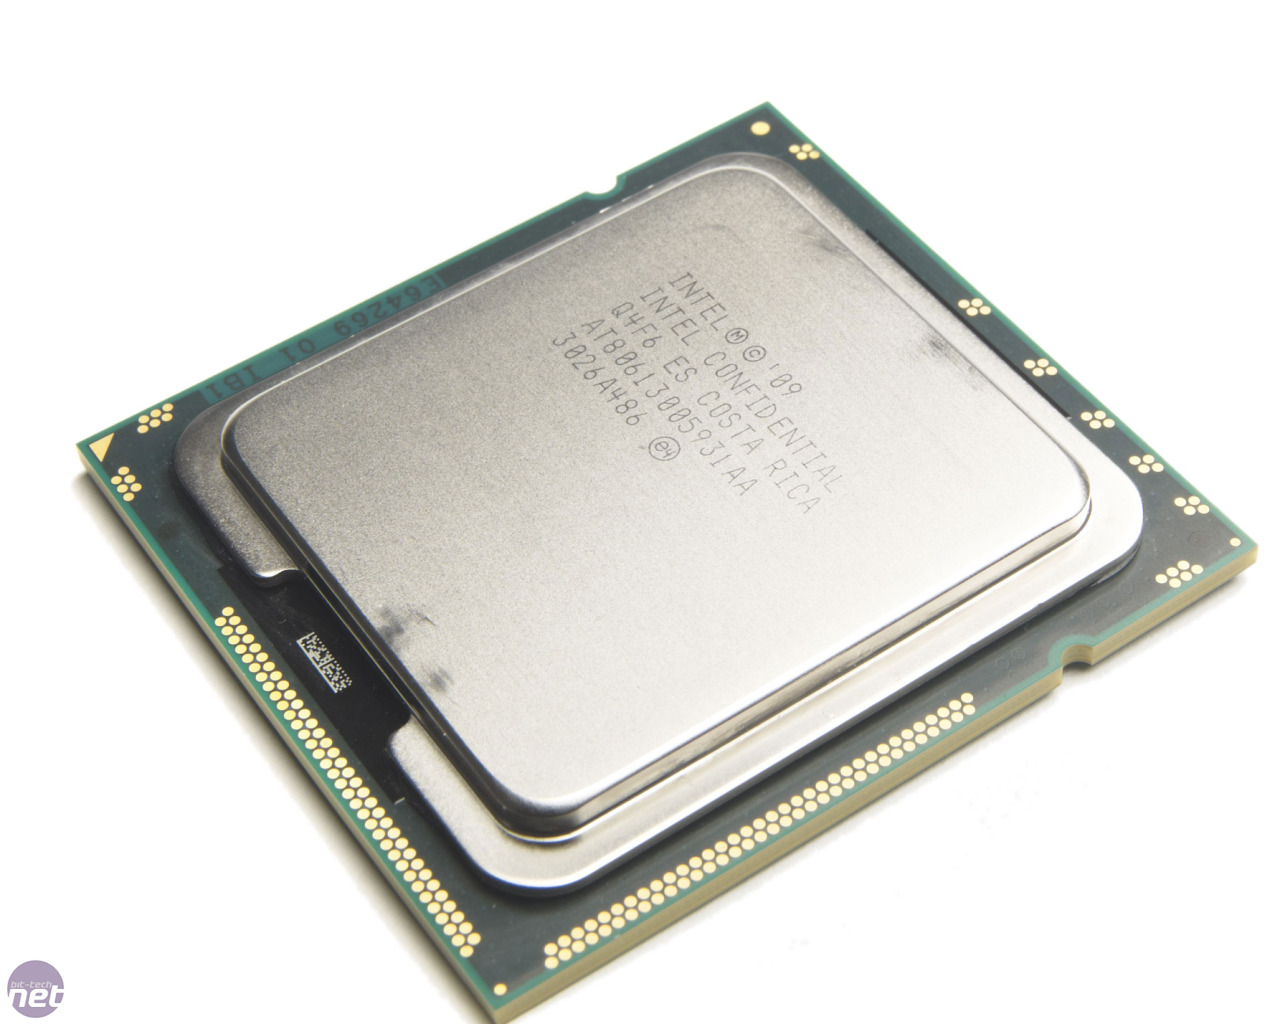 Overclocking the intel core i7-990x extreme edition processor review.